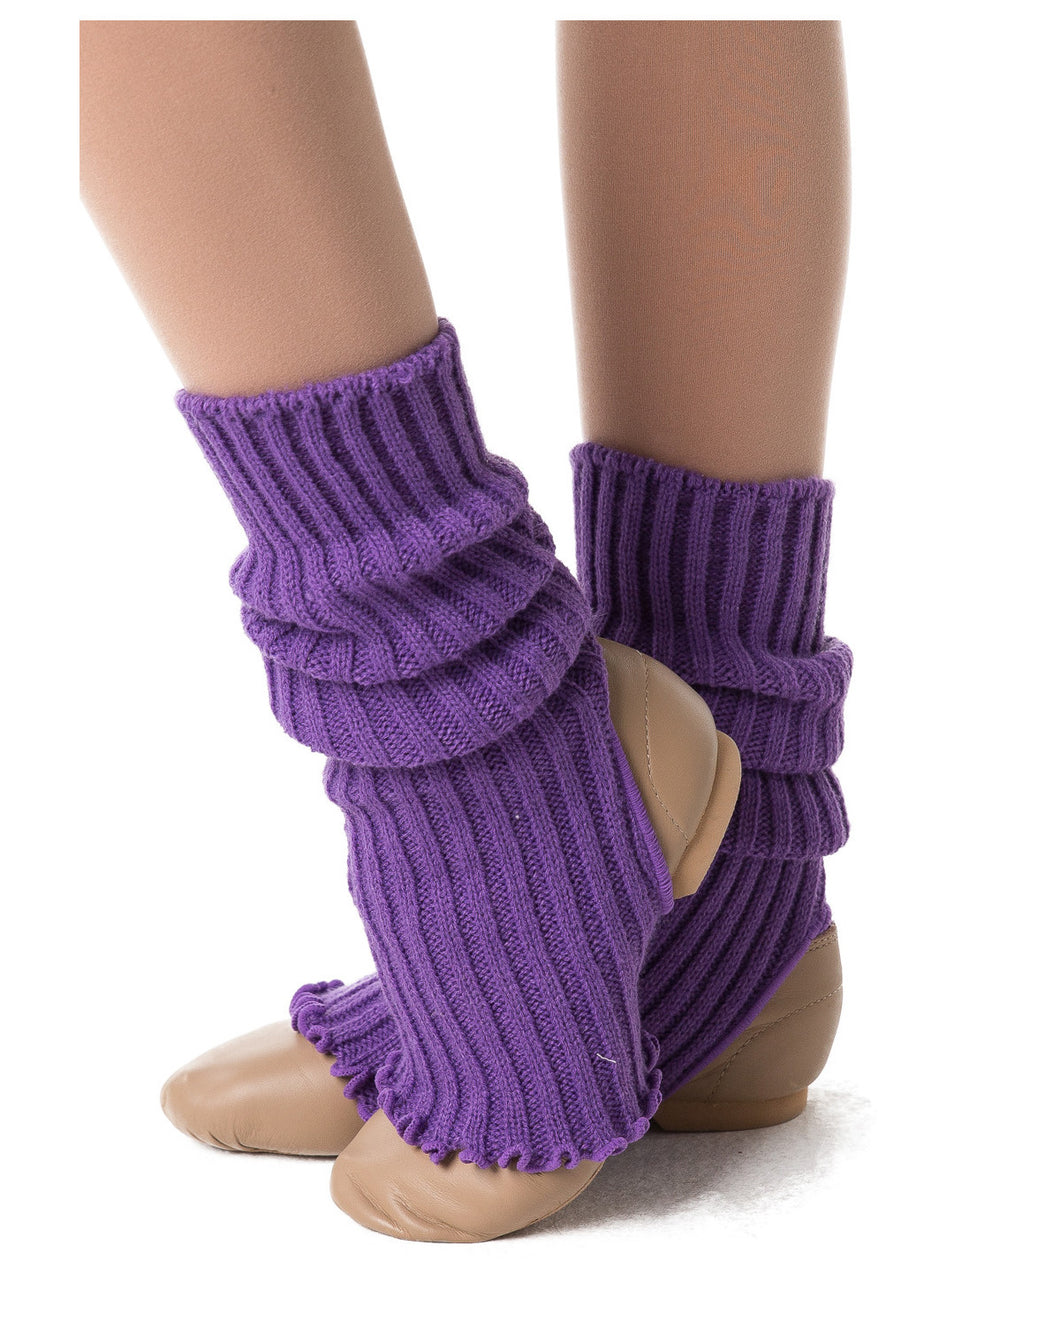 Studio 7 40cm Legwarmers Purple